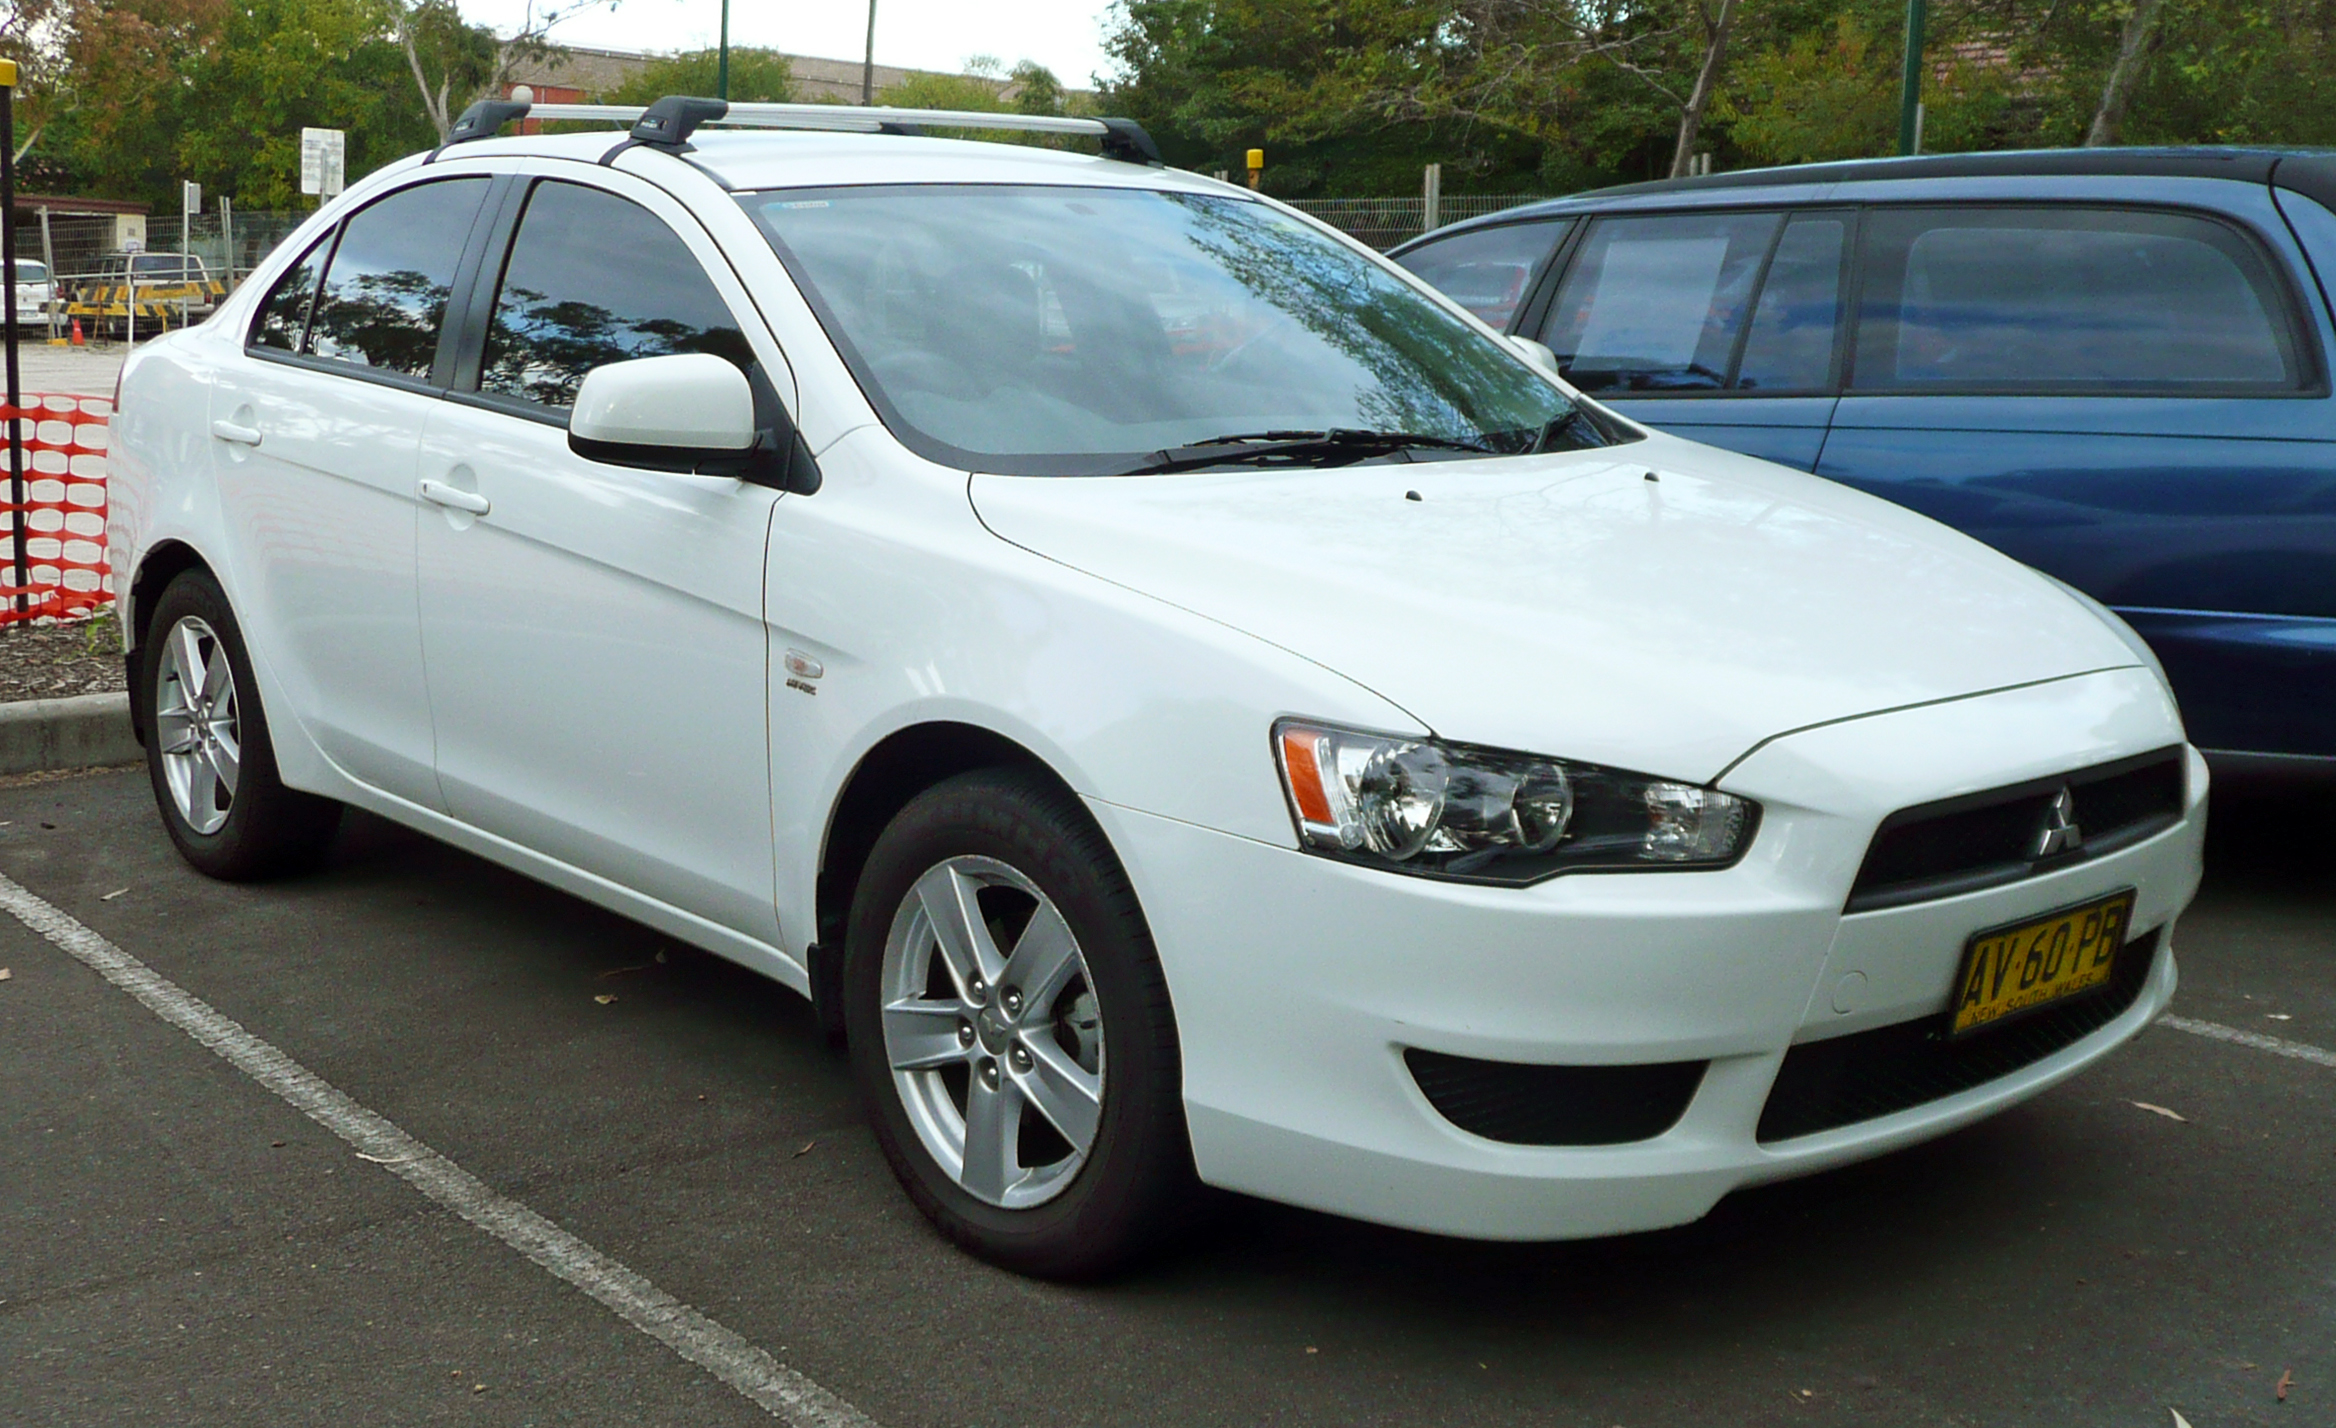 File Mitsubishi Lancer Cj Es Sedan Jpg Wikimedia